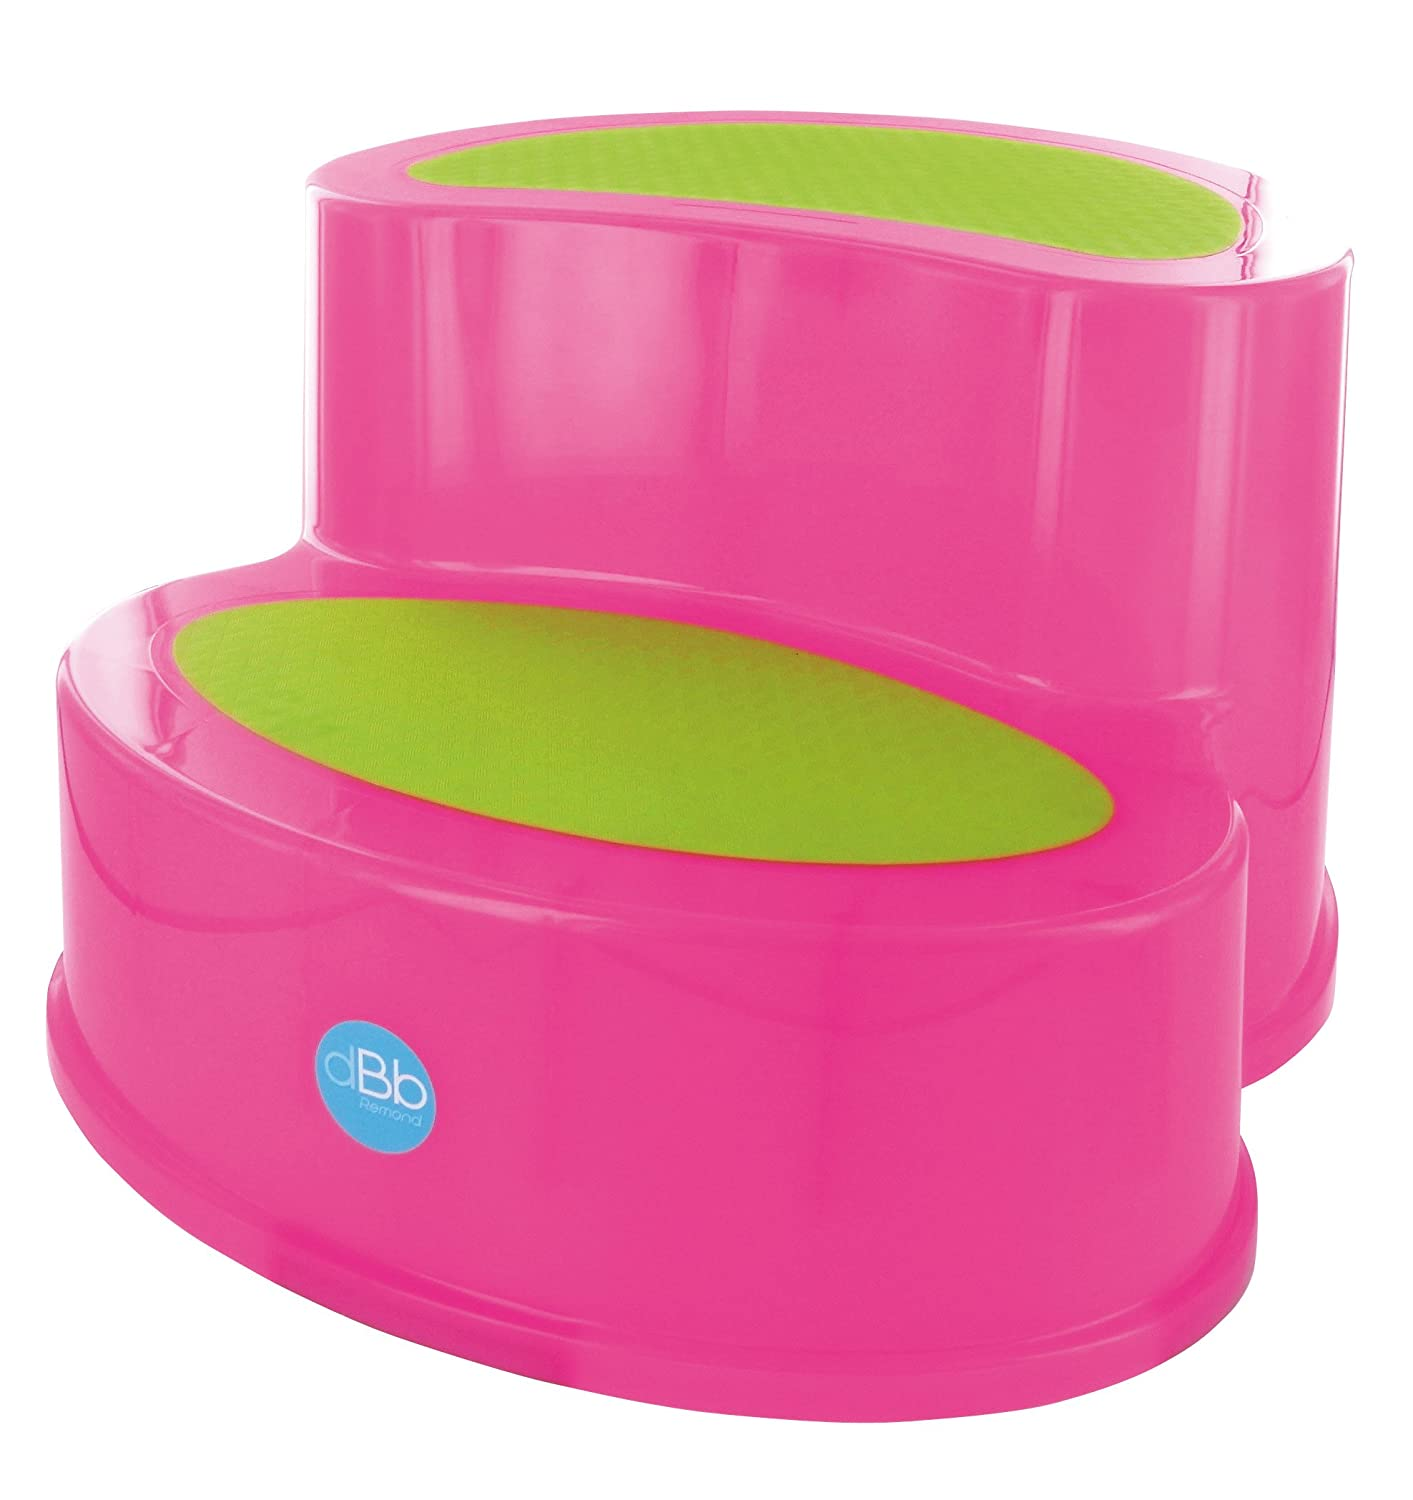 Anti-Slip Step Stool, Translucent Pink dBb Remond dBb Remond_307008